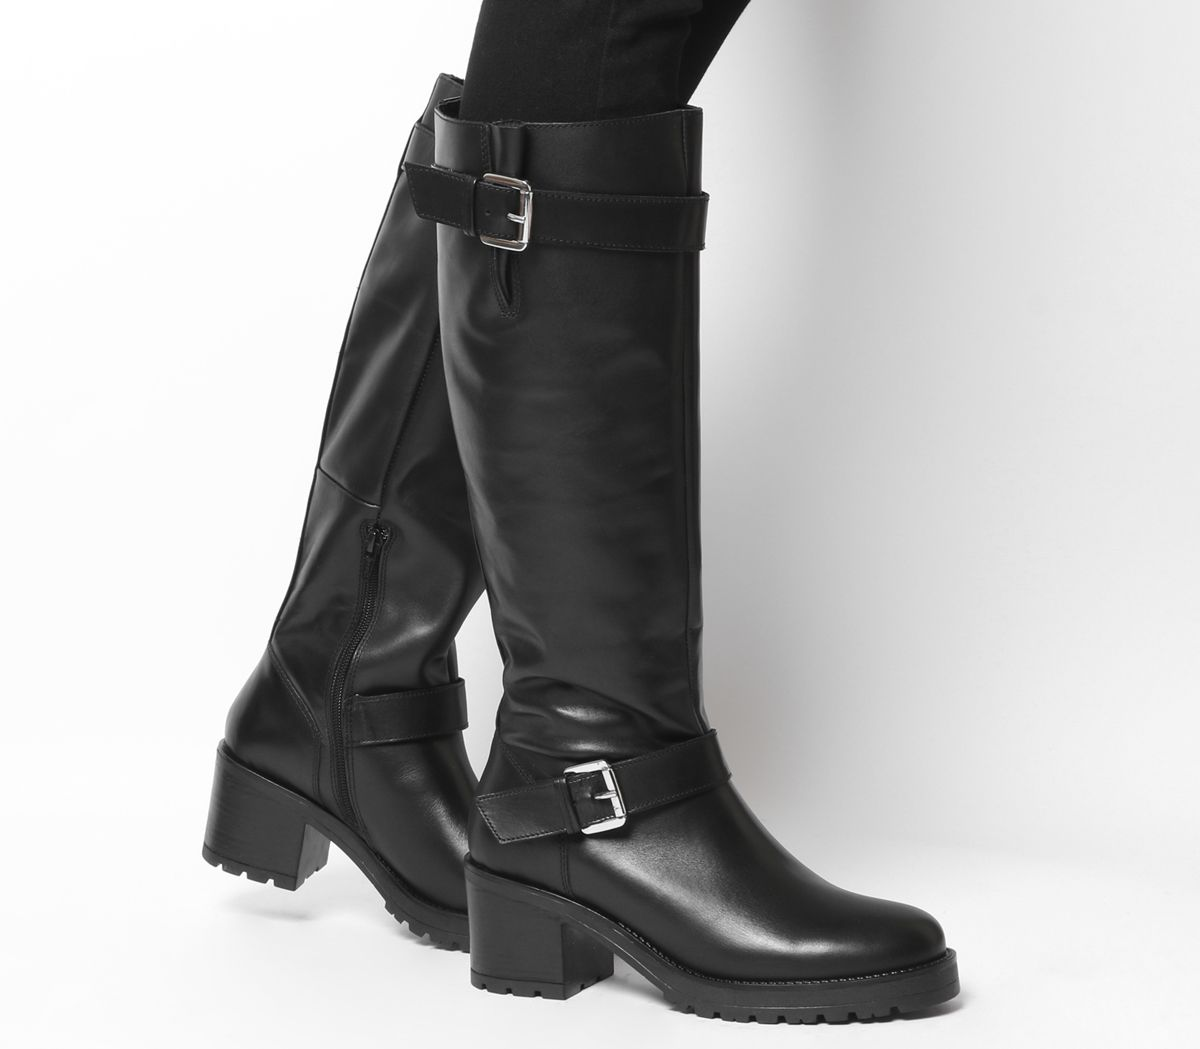 207f9a76de1e Office Kadi Casual Mid Buckle Knee Boots Black Leather - Knee Boots